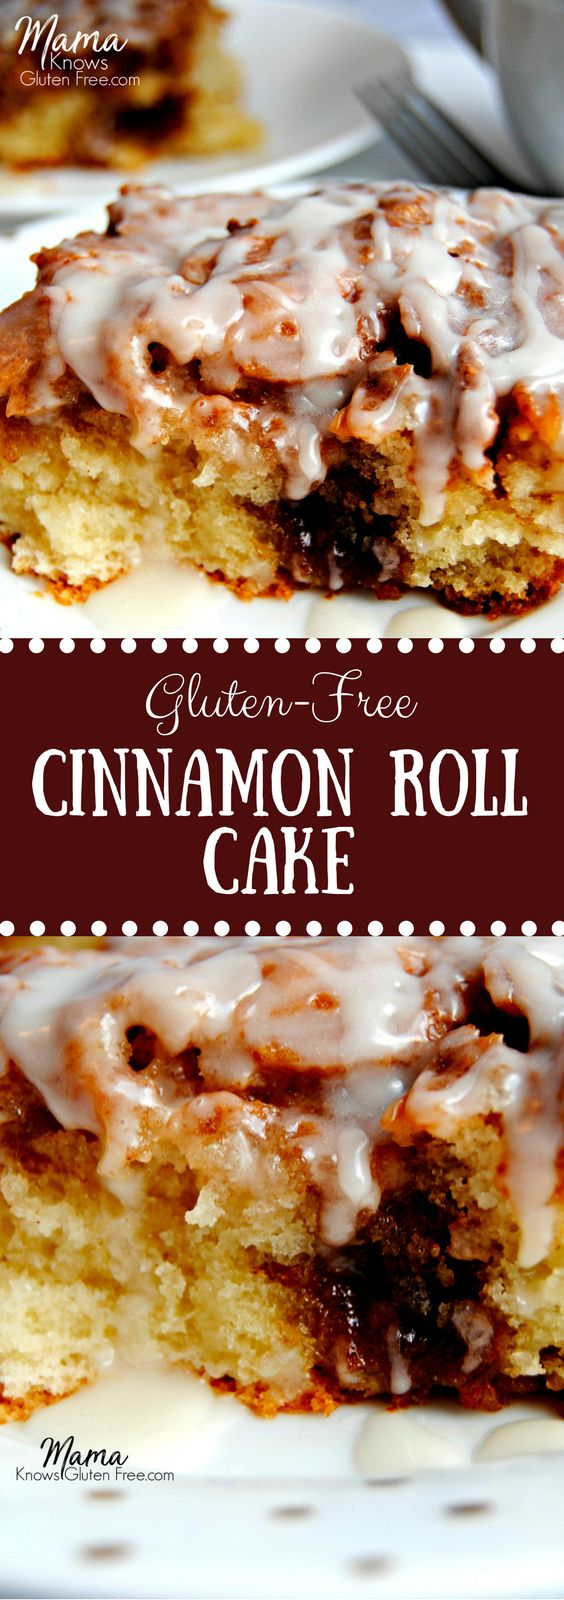 Do you miss cinnamon rolls since going gluten-free? Now you don't have too! This Cinnamon Roll Cake has the texture and the taste of a gooey cinnamon roll.